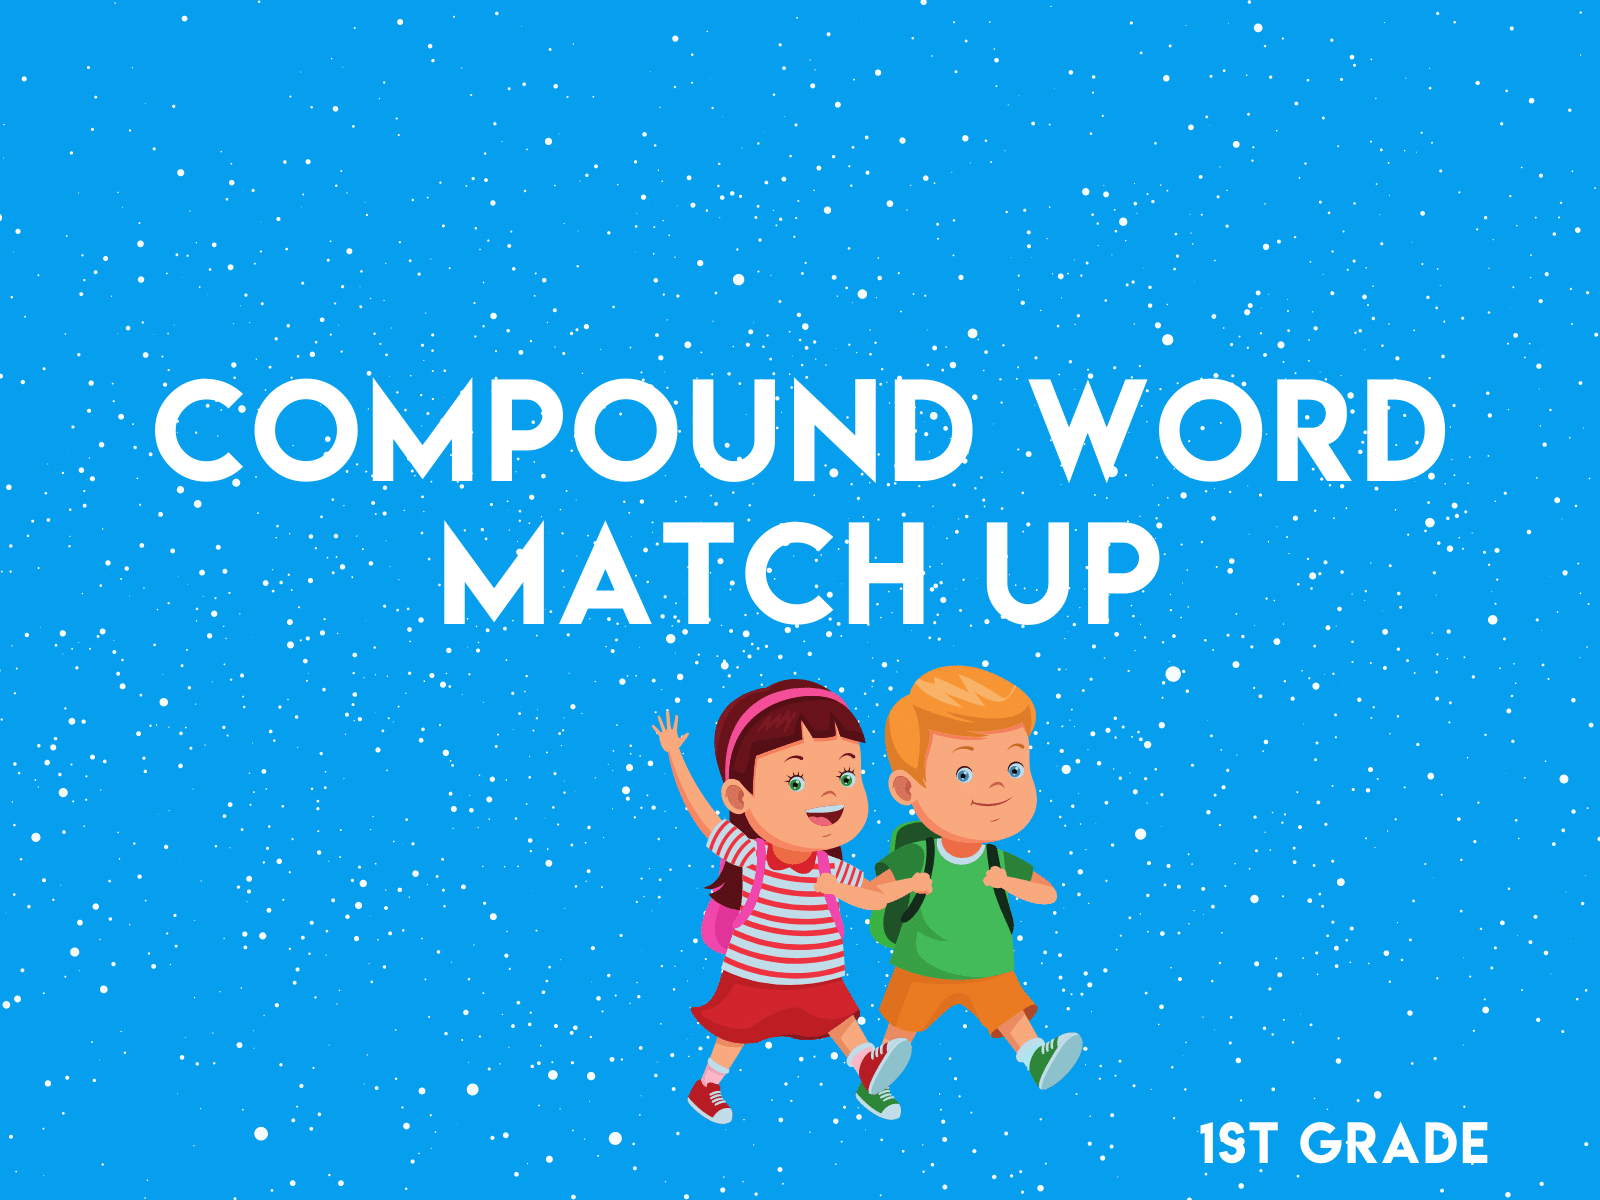 Compound word match up | Free learning first grade learning resource